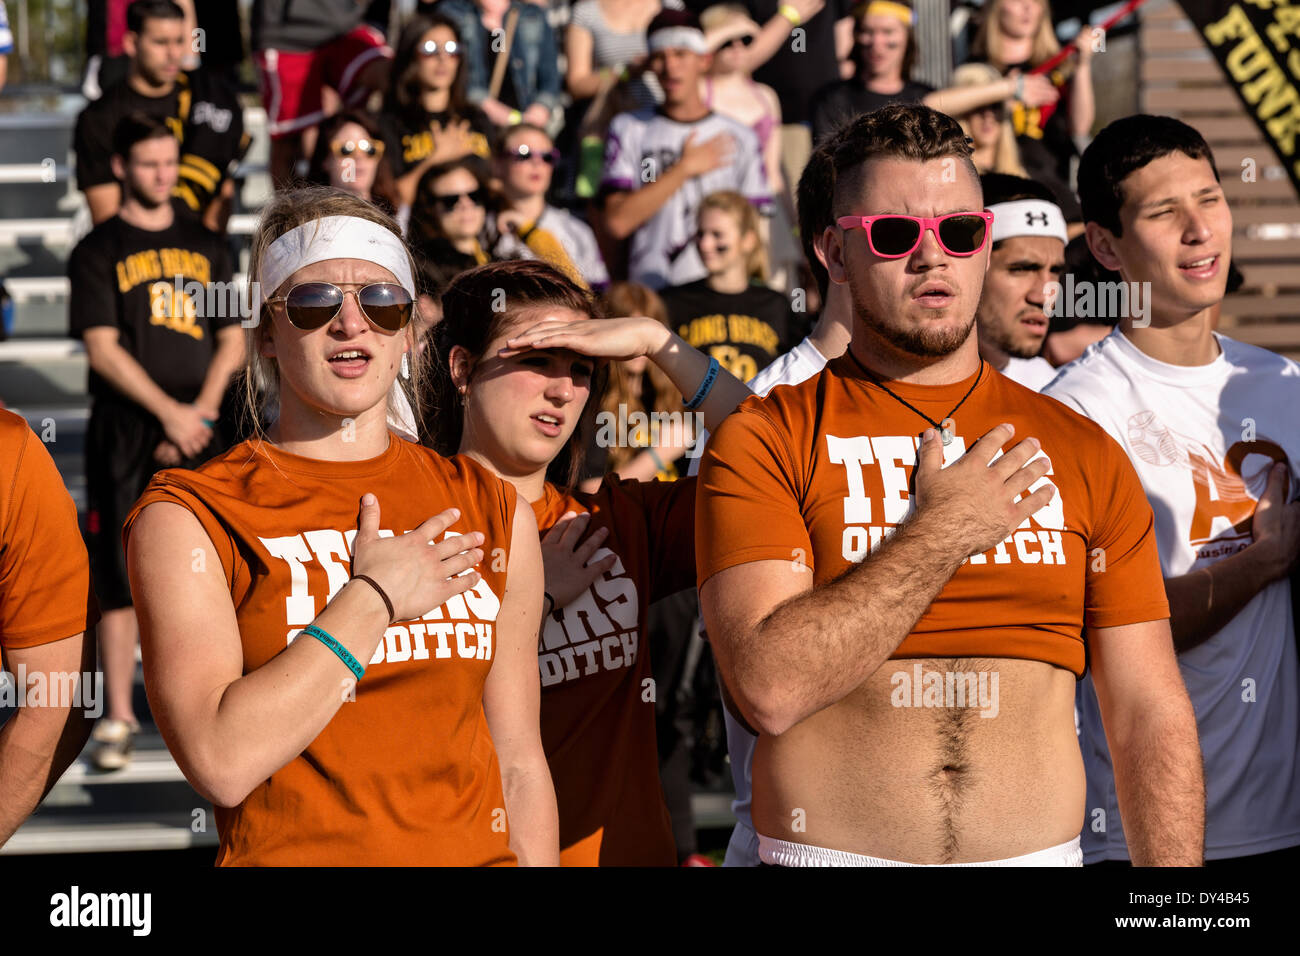 Members of the University of Texas team stand for the national anthem during the opening ceremonies for the 7th Annual Quidditch World Cup April 5, 2014 in Myrtle Beach, South Carolina. The sport, created from the Harry Potter novels is a co-ed contact sport with elements from rugby, basketball, and dodgeball. A quidditch team is made up of seven athletes who play with broomsticks between their legs at all times. - Stock Image